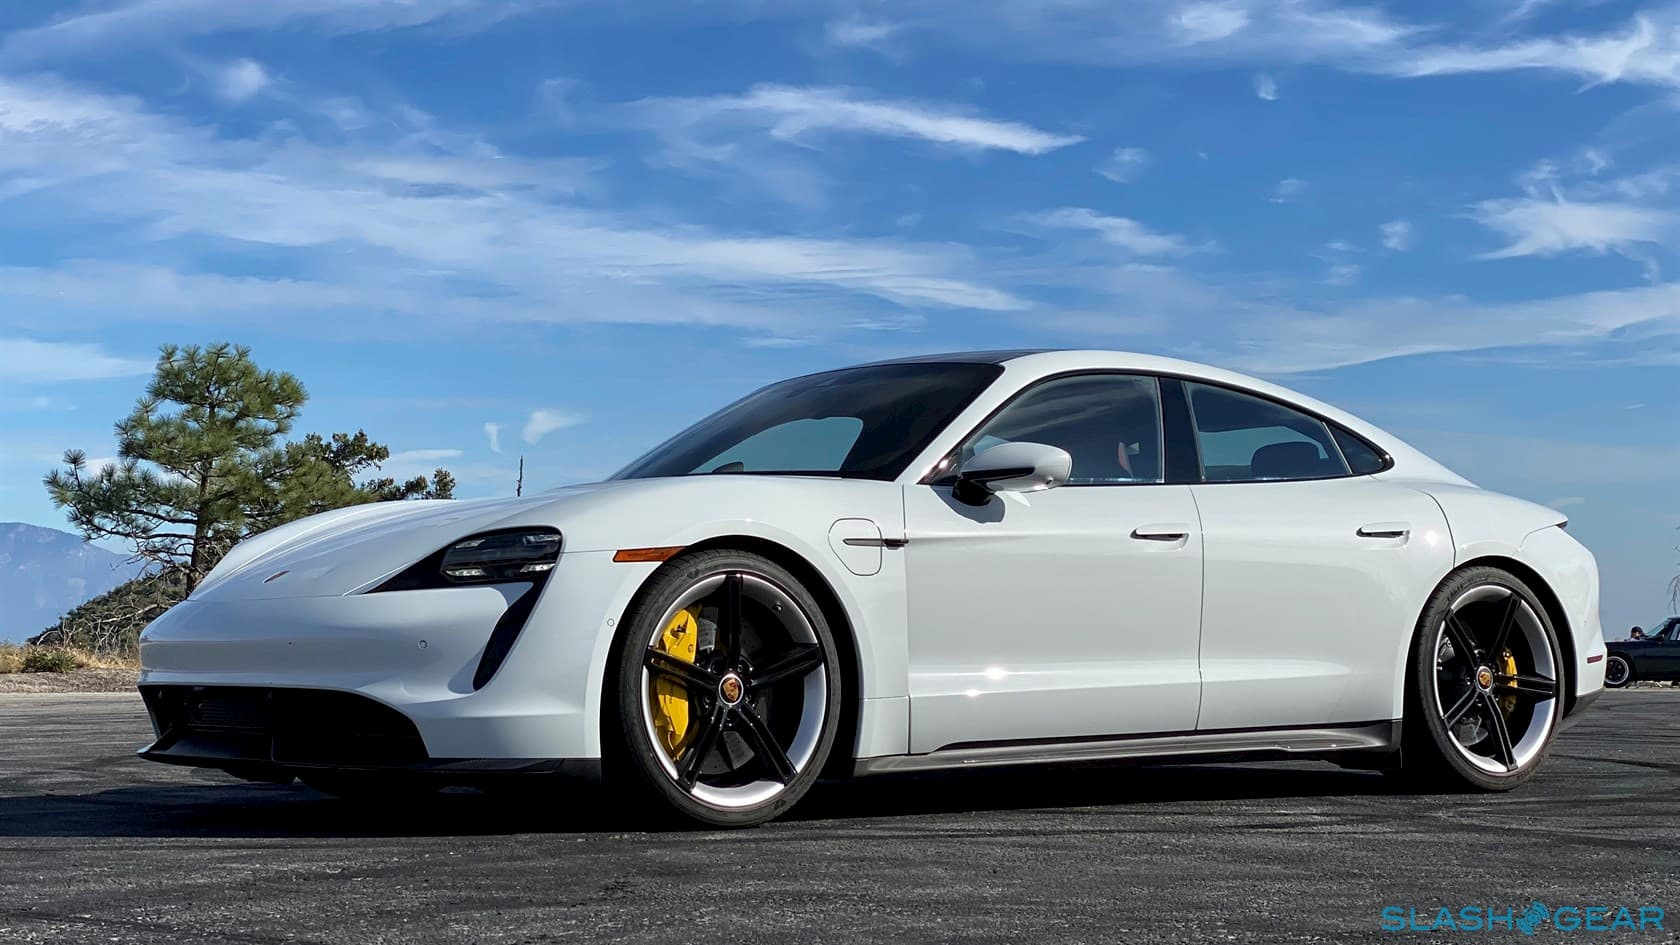 2020 Porsche Taycan Turbo S First Drive Review: Electric